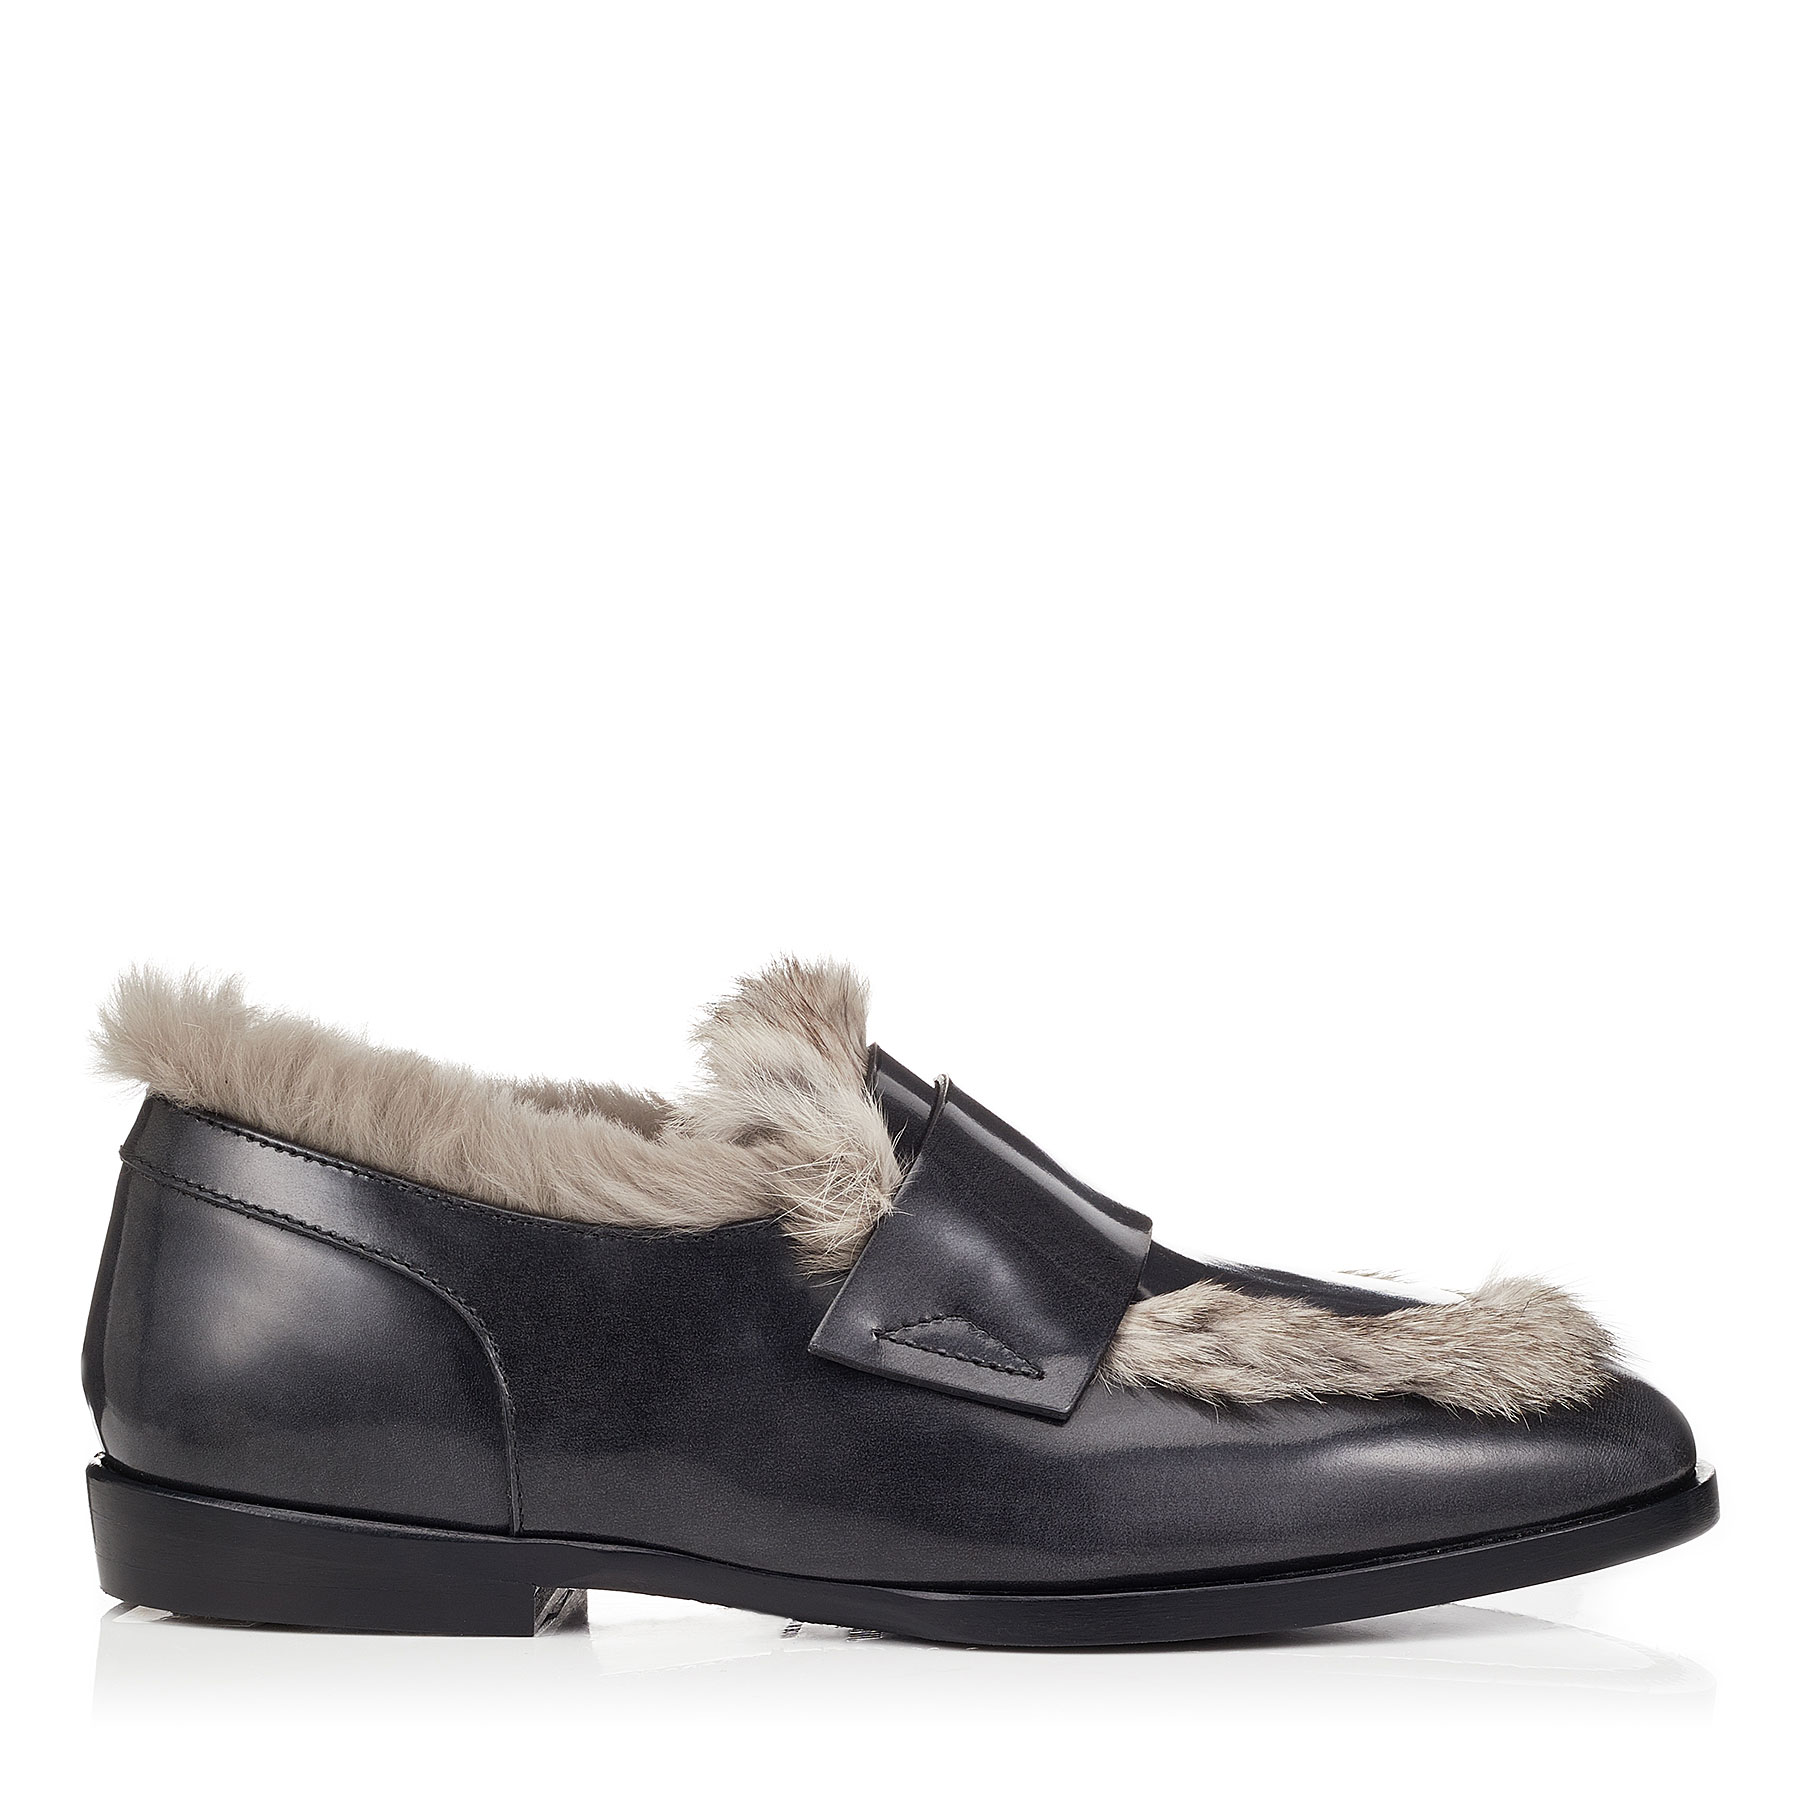 TEDI/F Slate Brushed Off Leather Loafers with Rabbit Fur by Jimmy Choo